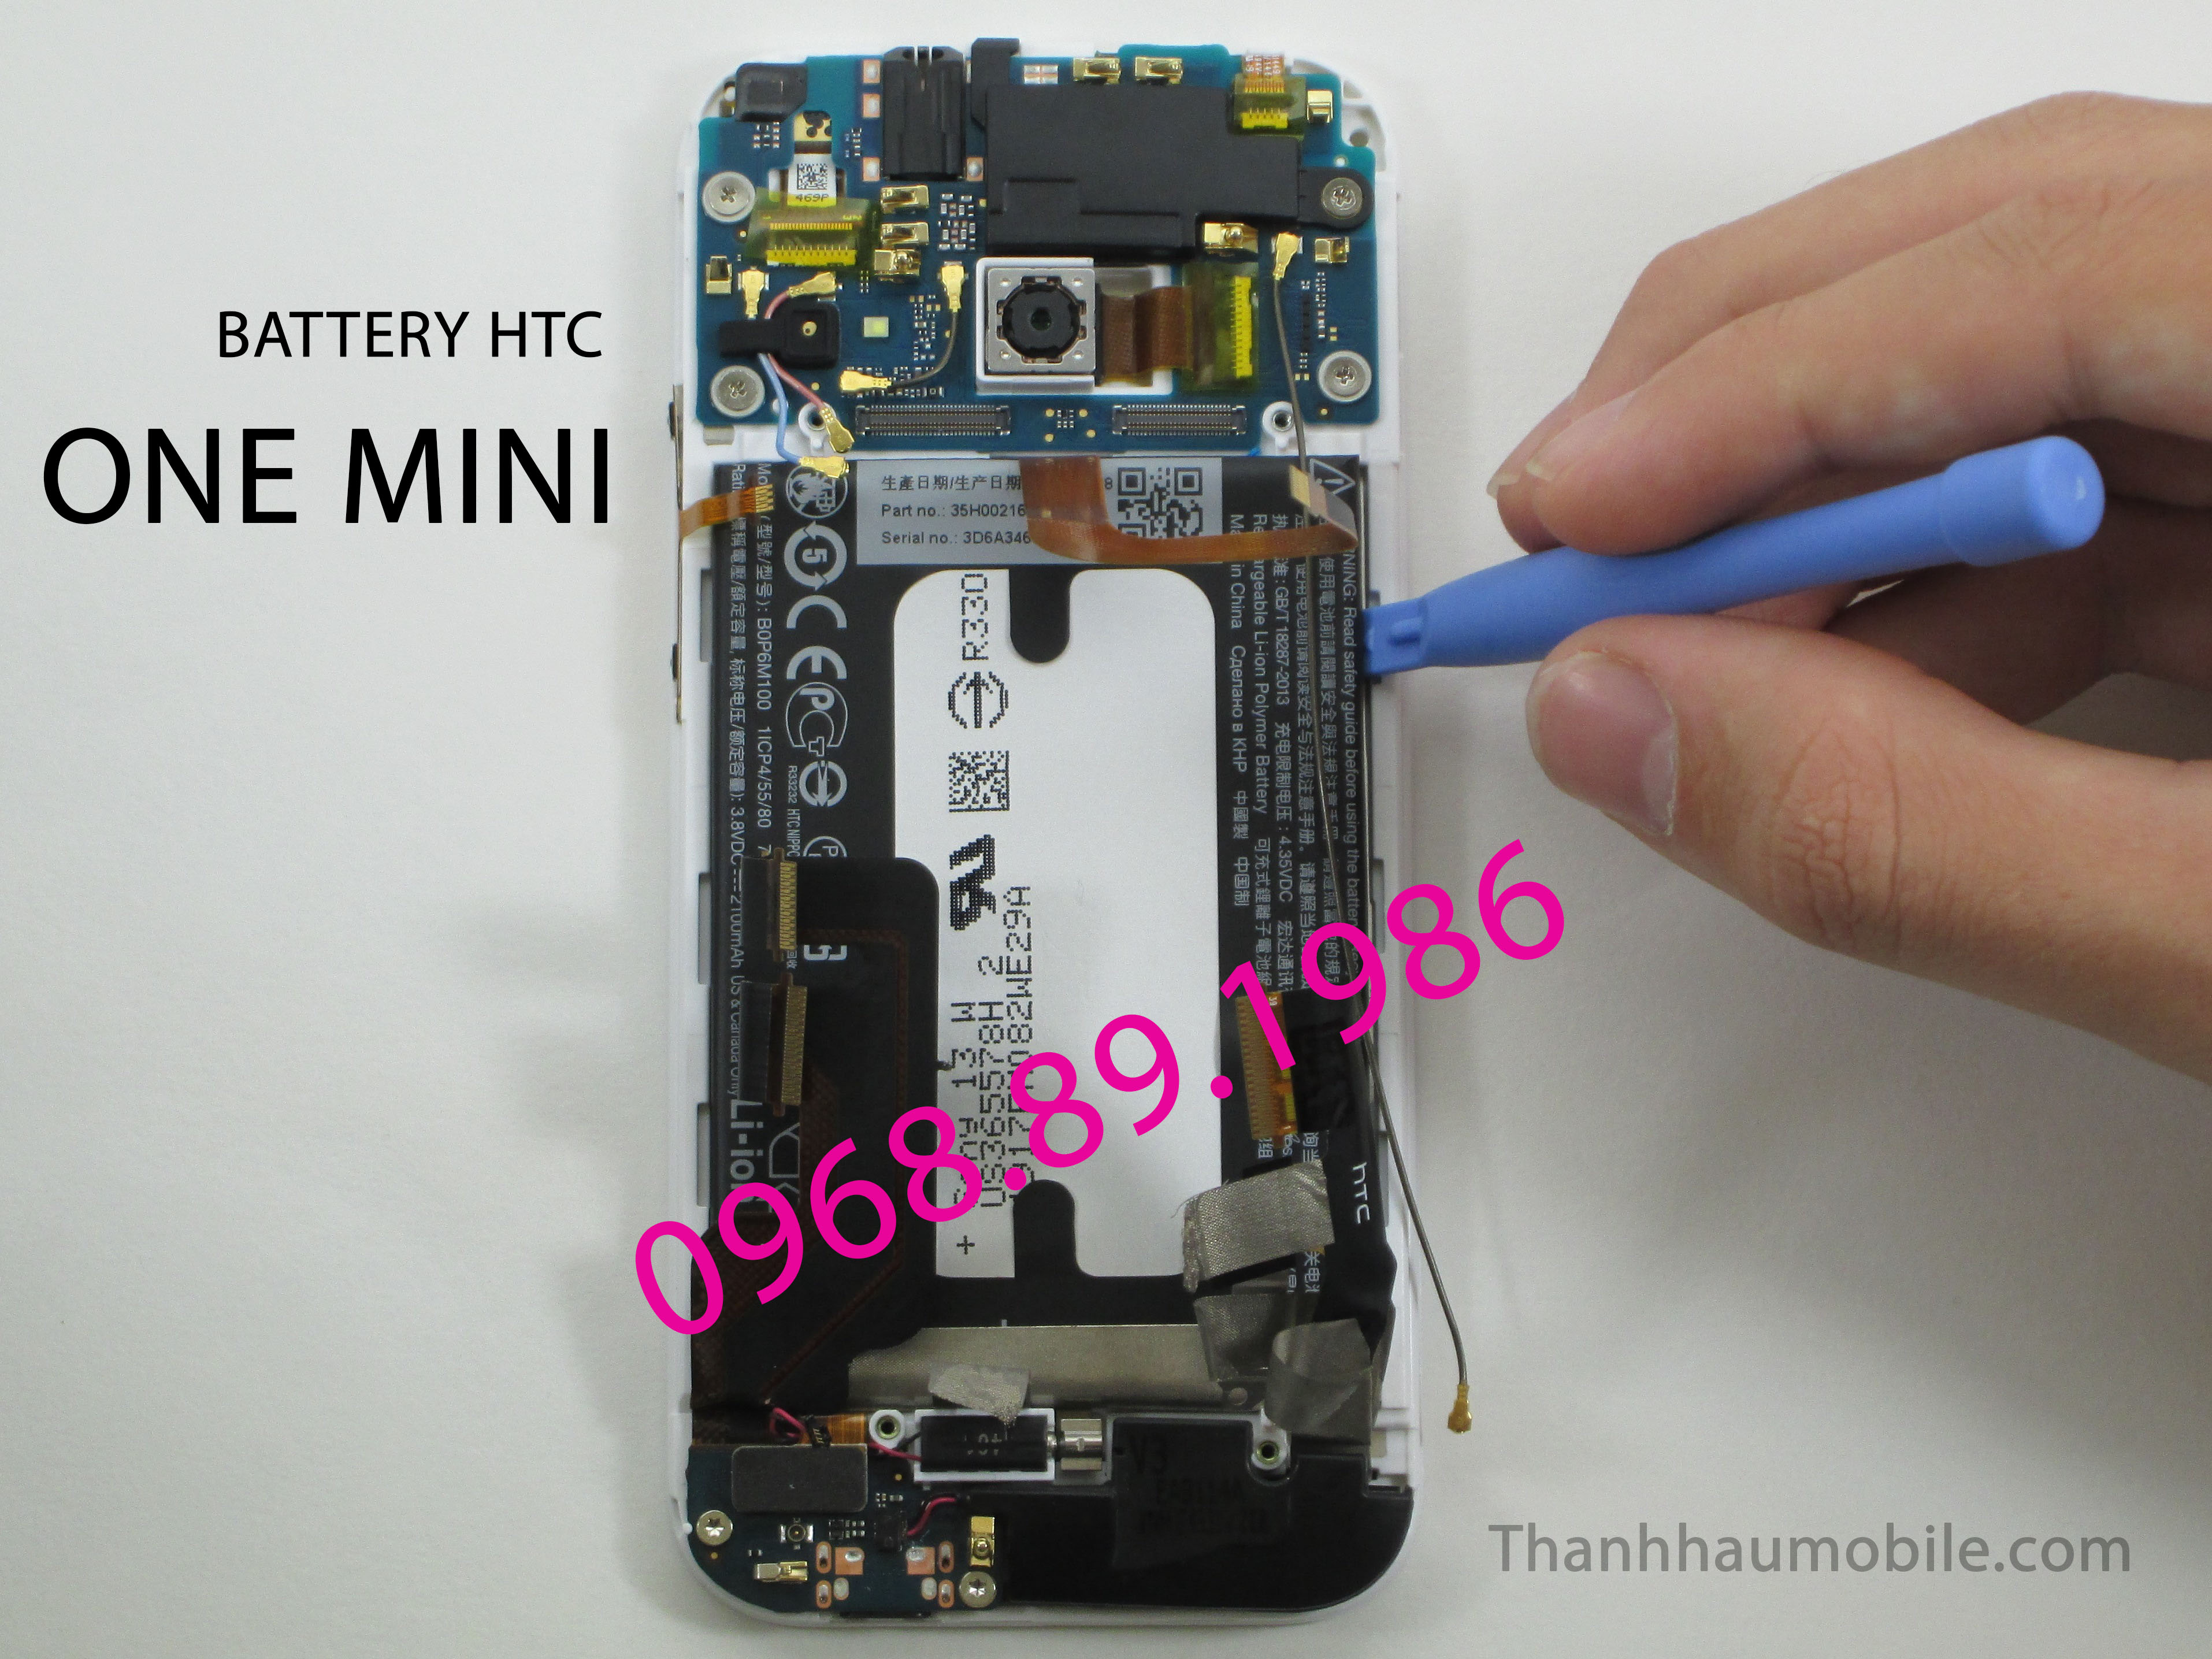 PIN HTC ONE MINI | PIN HTC ONE MINI GIÁ RẺ HÀ NỘI - Thanhhaumobile